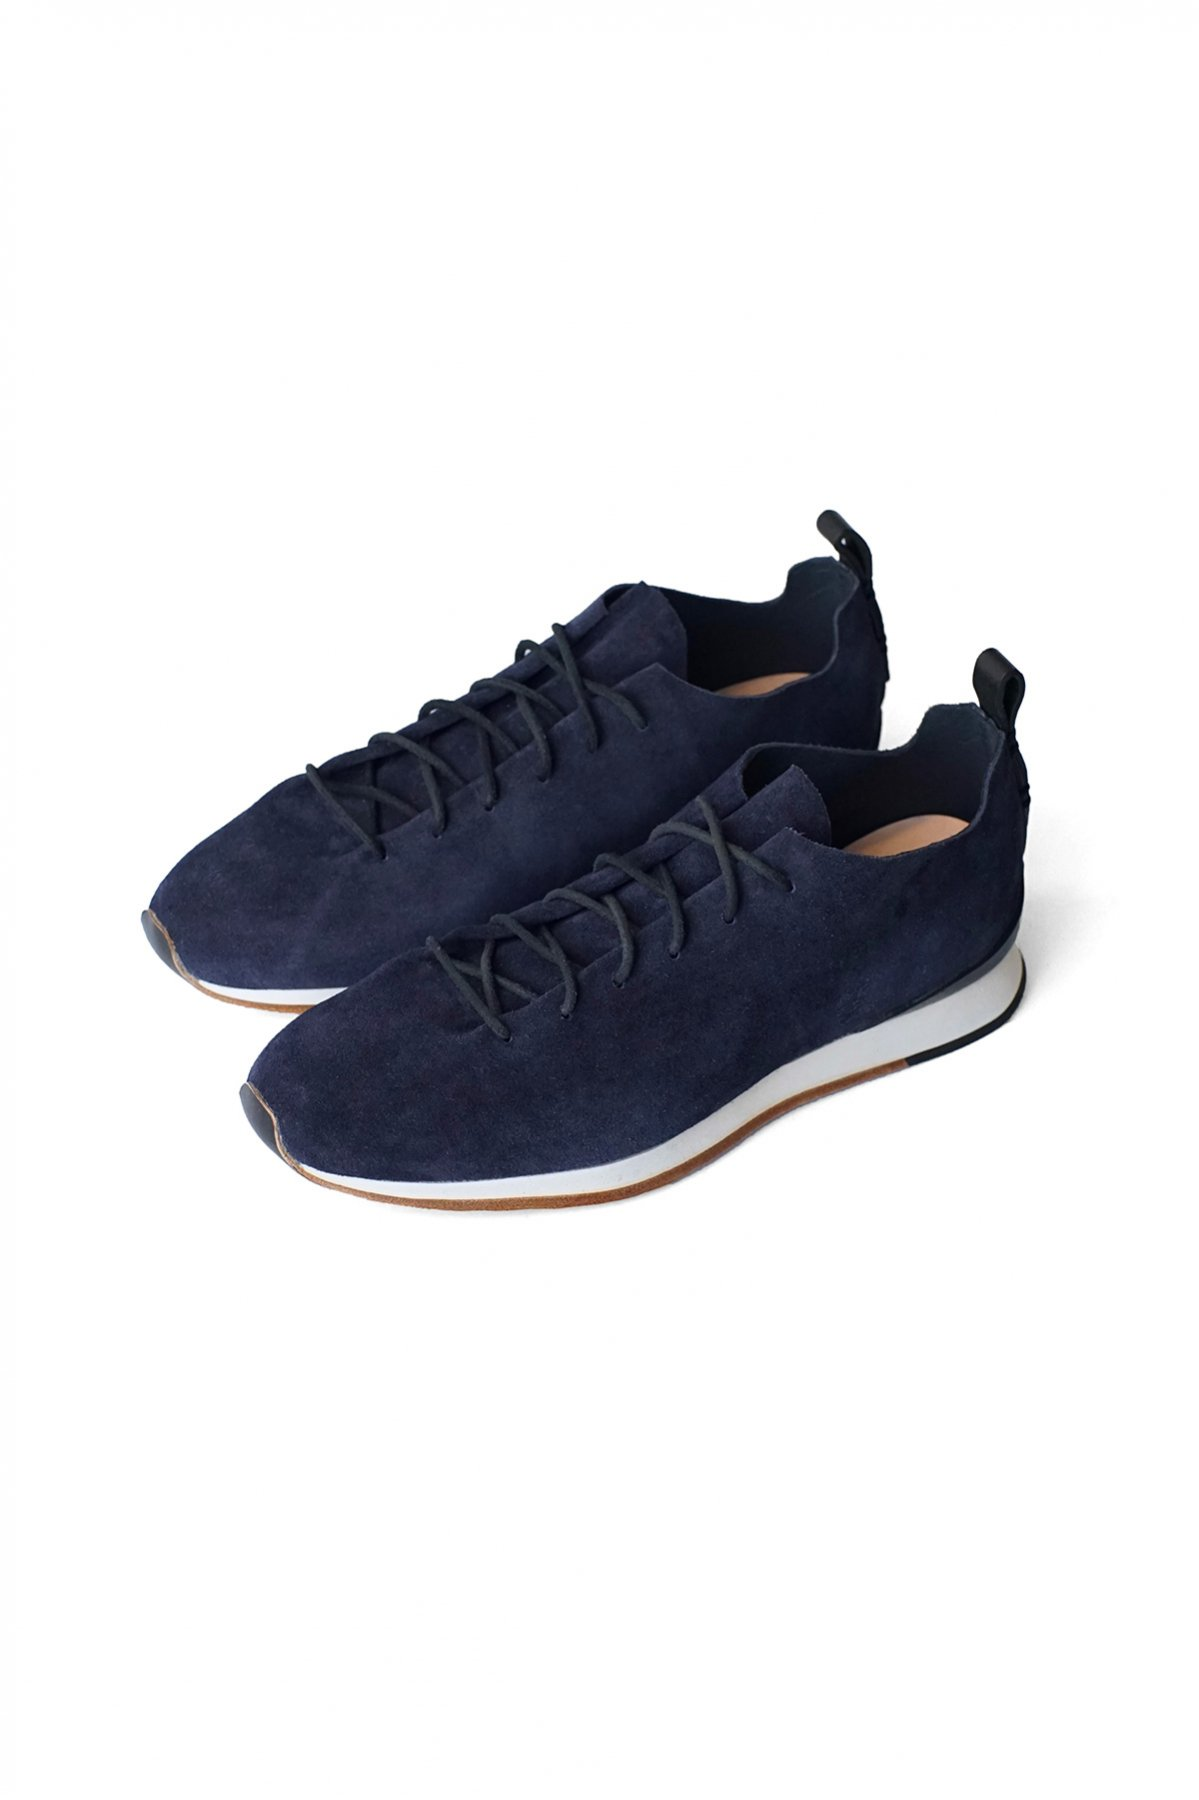 FEIT - RUNNER - MARINE - PRICE  64,900 tax-in